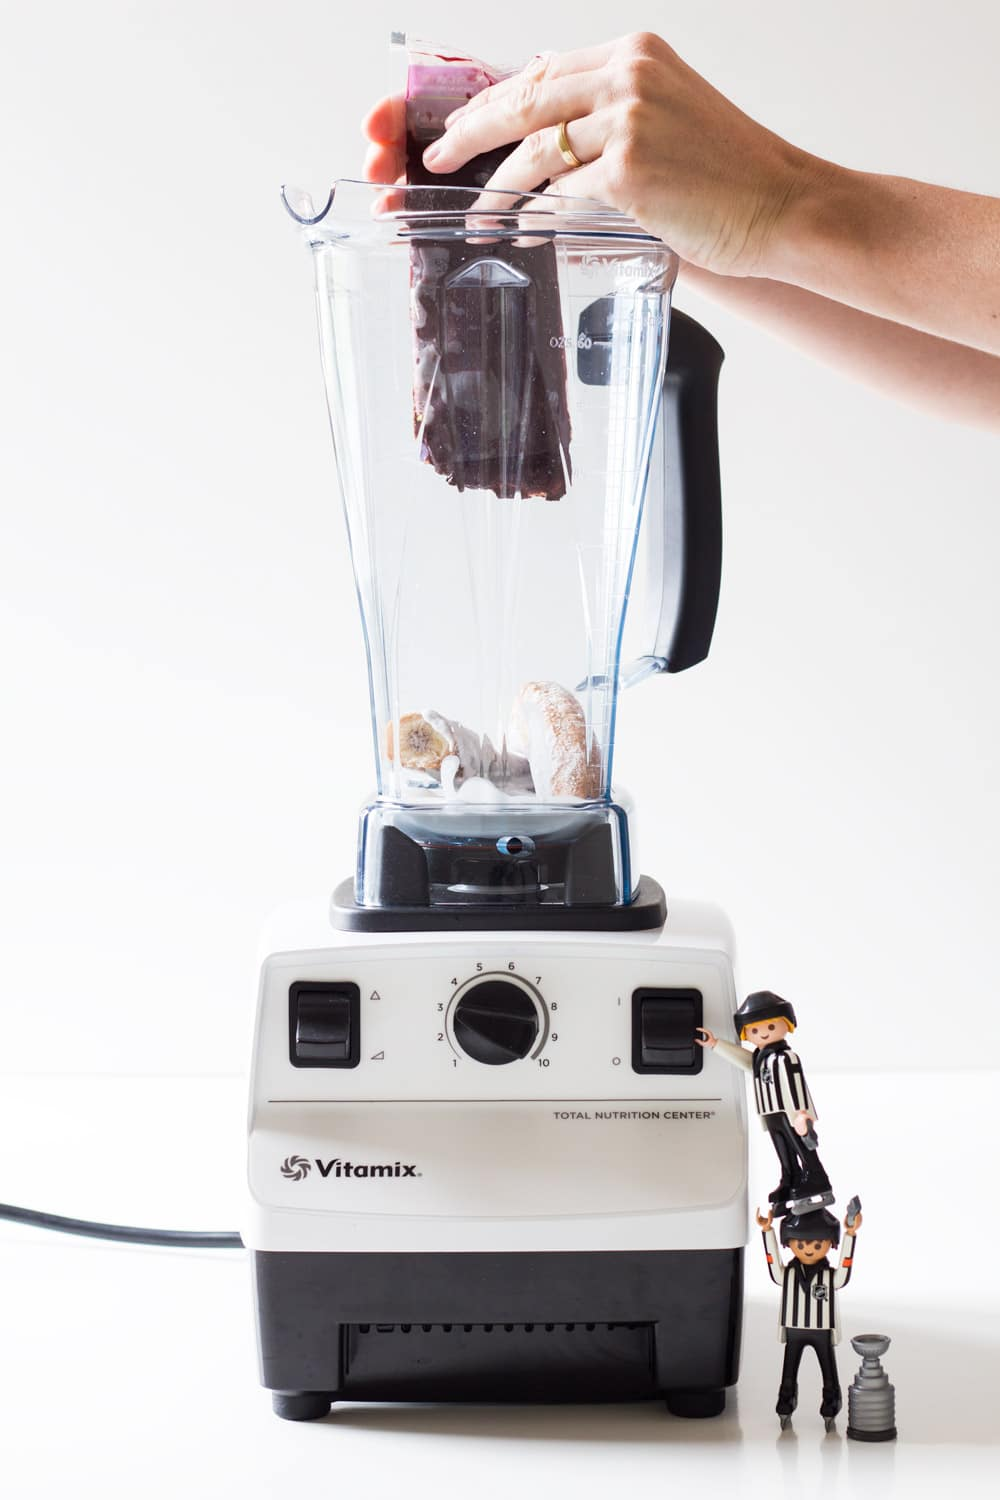 Hands squeezing acai pulp into a blender. Two toy plastic men climbing on the blender.